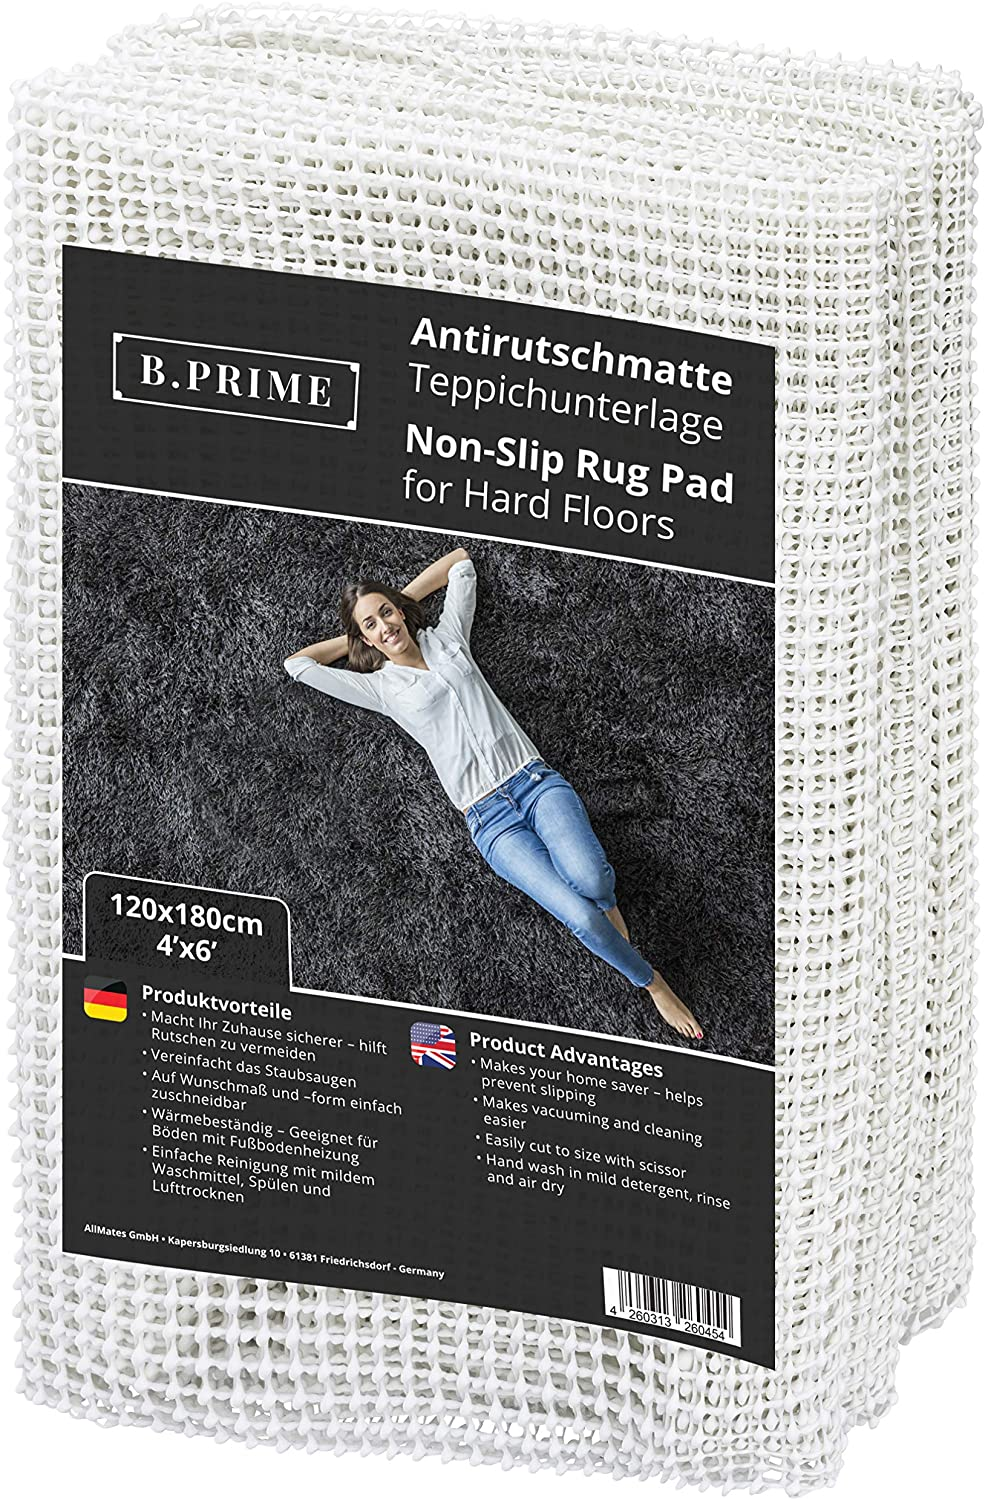 B.PRIME 4x6-Feet Non-Slip Rug Underlay Pad for Hard Floors. Different Size Options Available